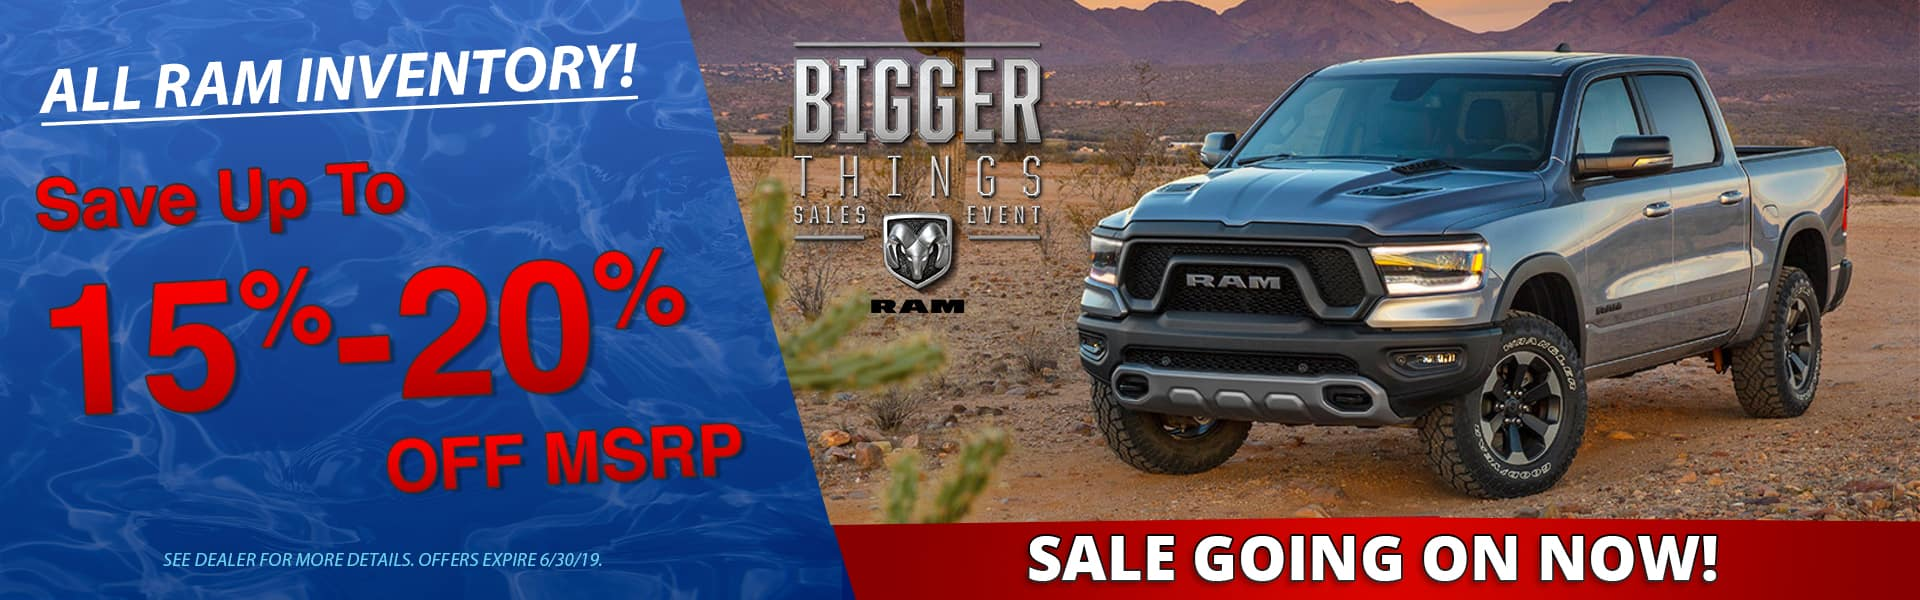 All Rams Inventory Sale